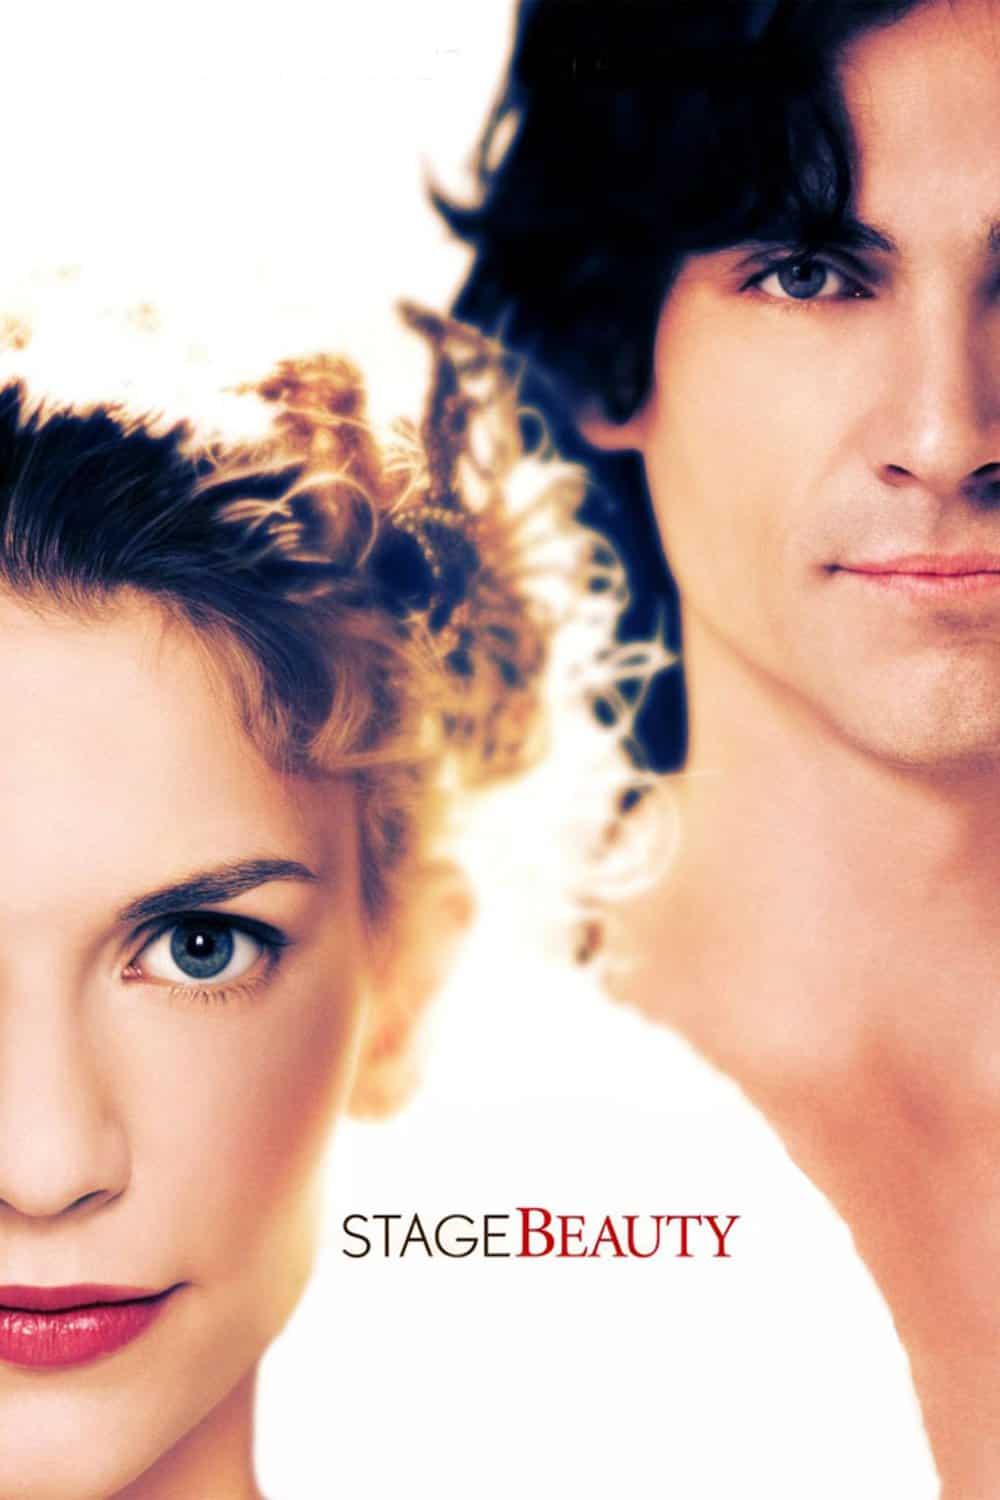 Stage Beauty, 2004